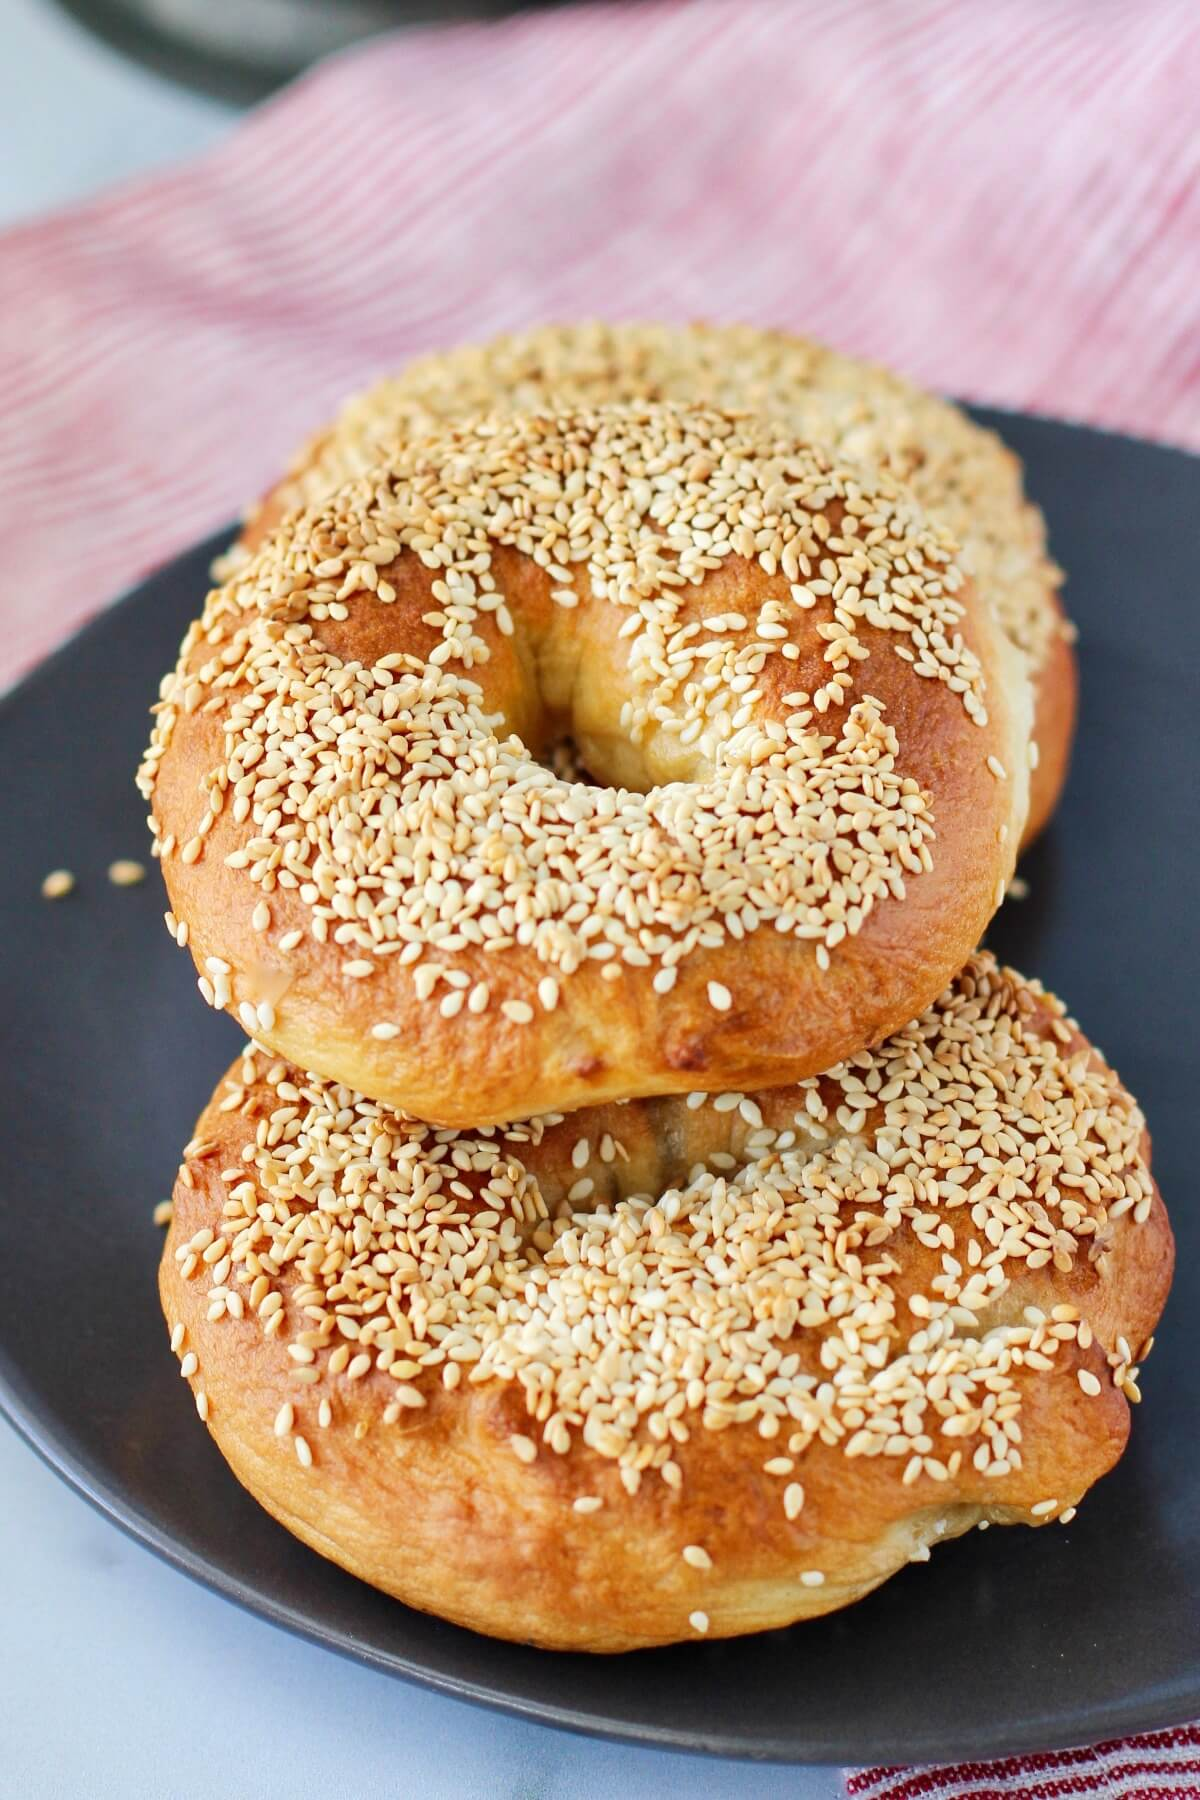 Montreal-Style Bagels with sesame seeds